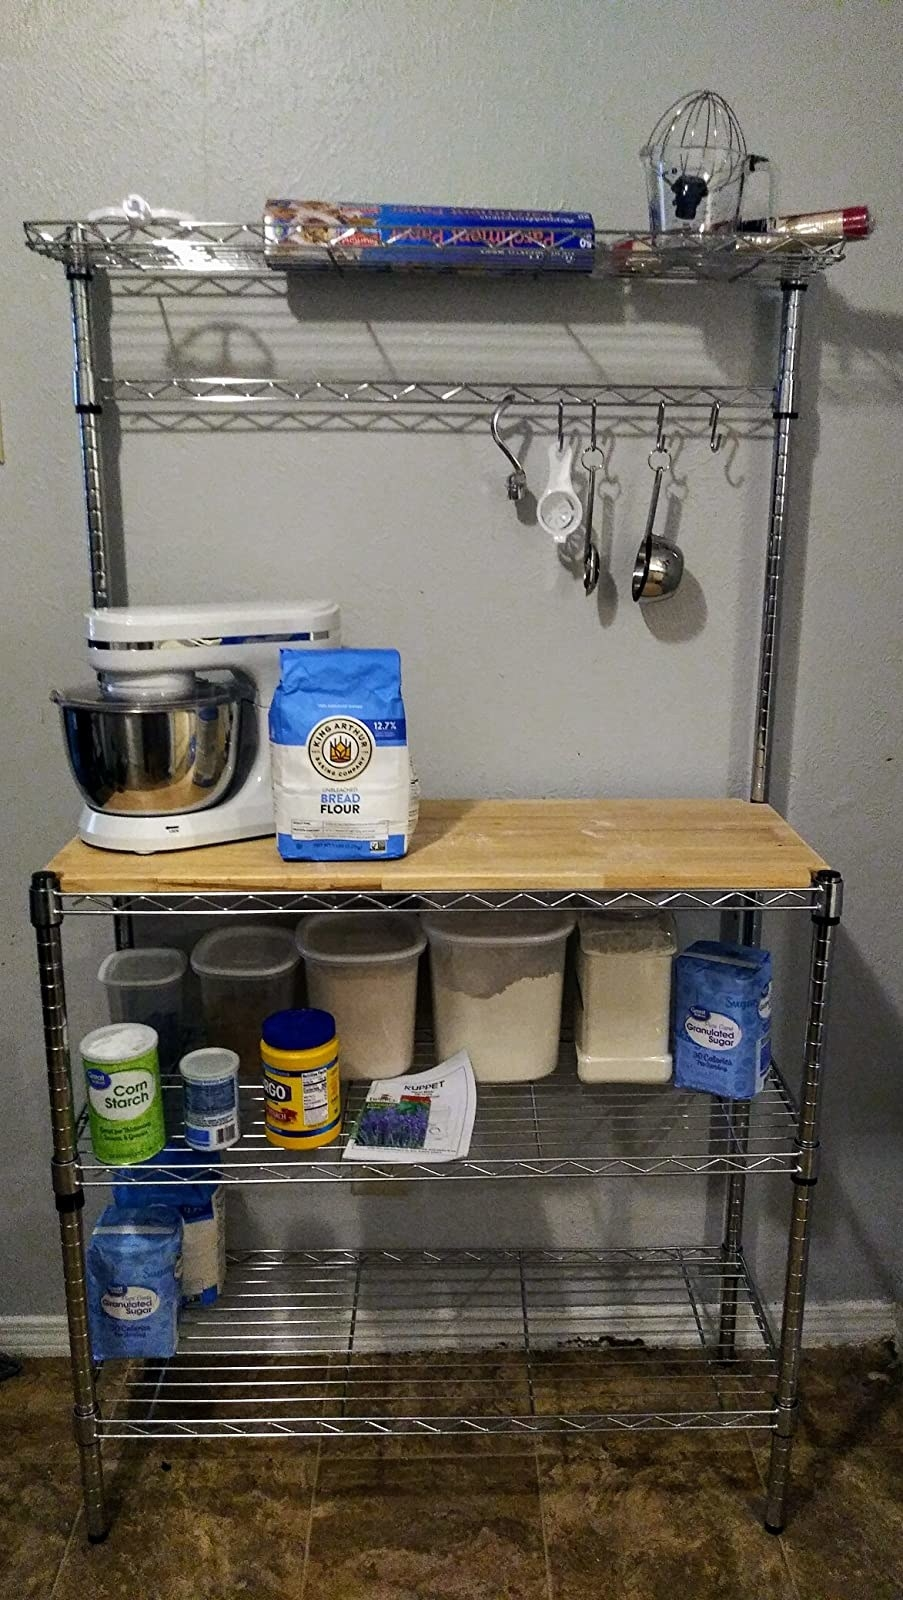 A reviewer photo of the baker's rack, which has four shelves and hanging S-hooks